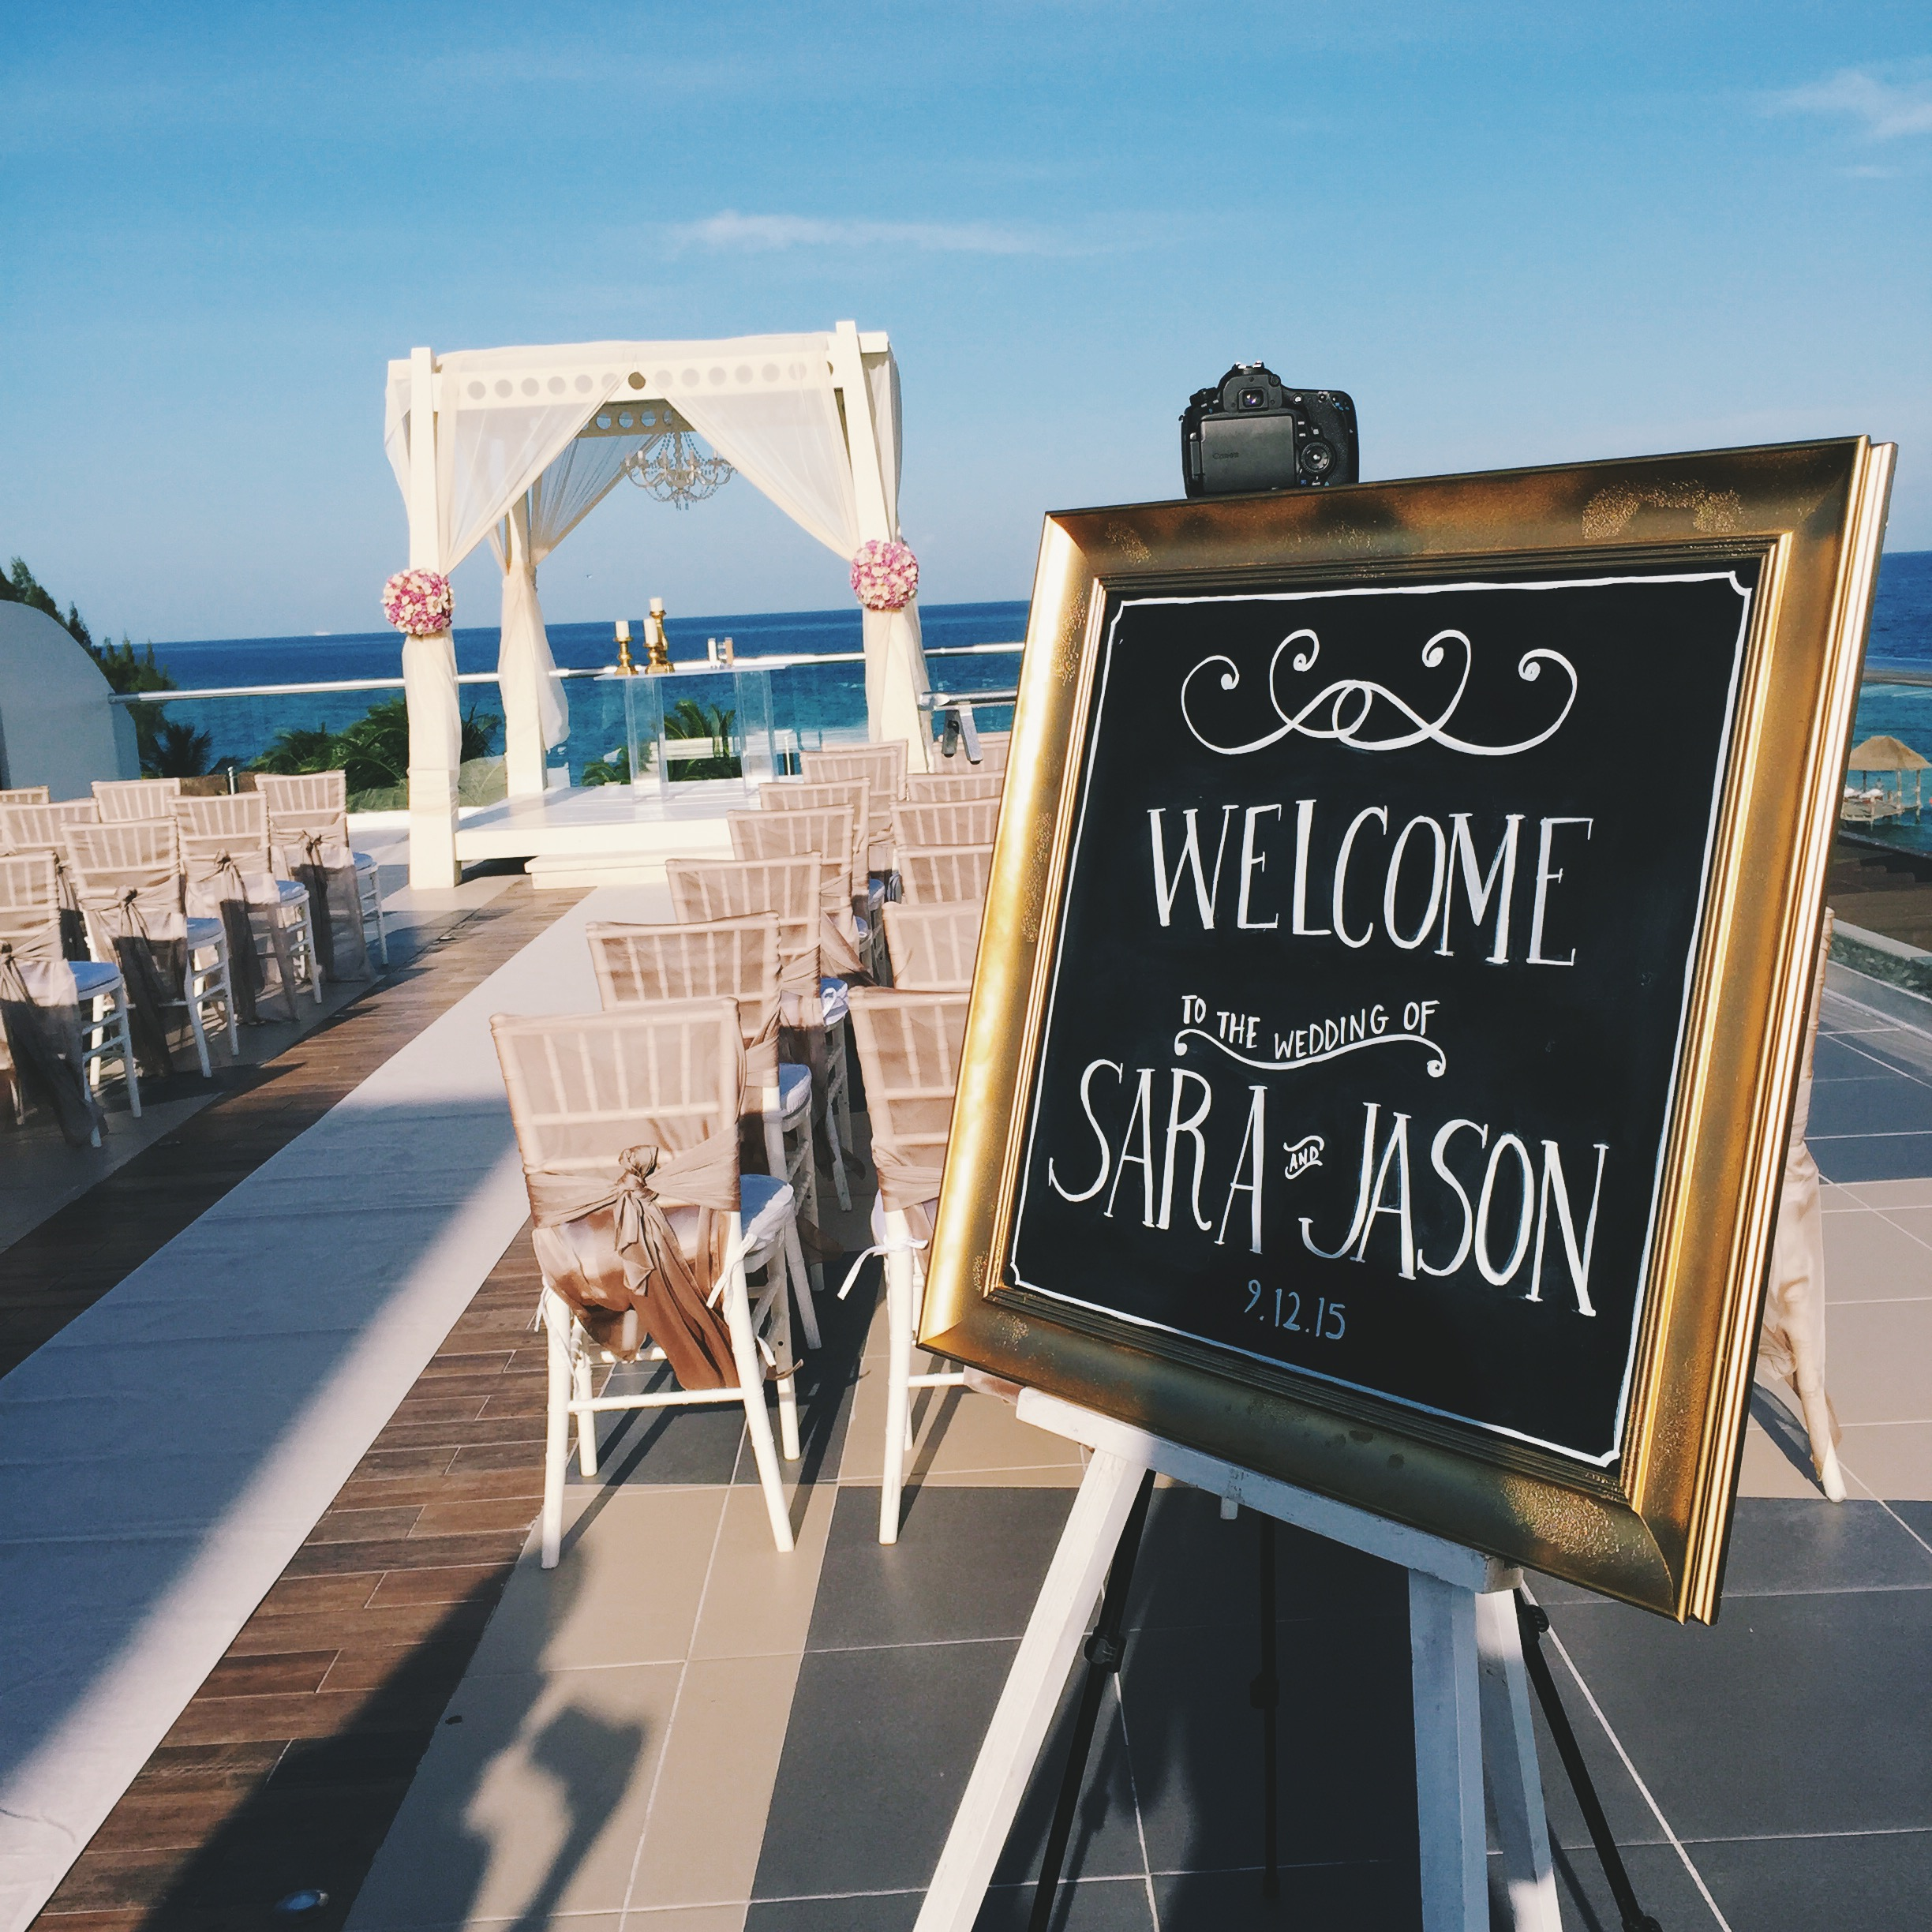 The sign I created for the newlyweds!